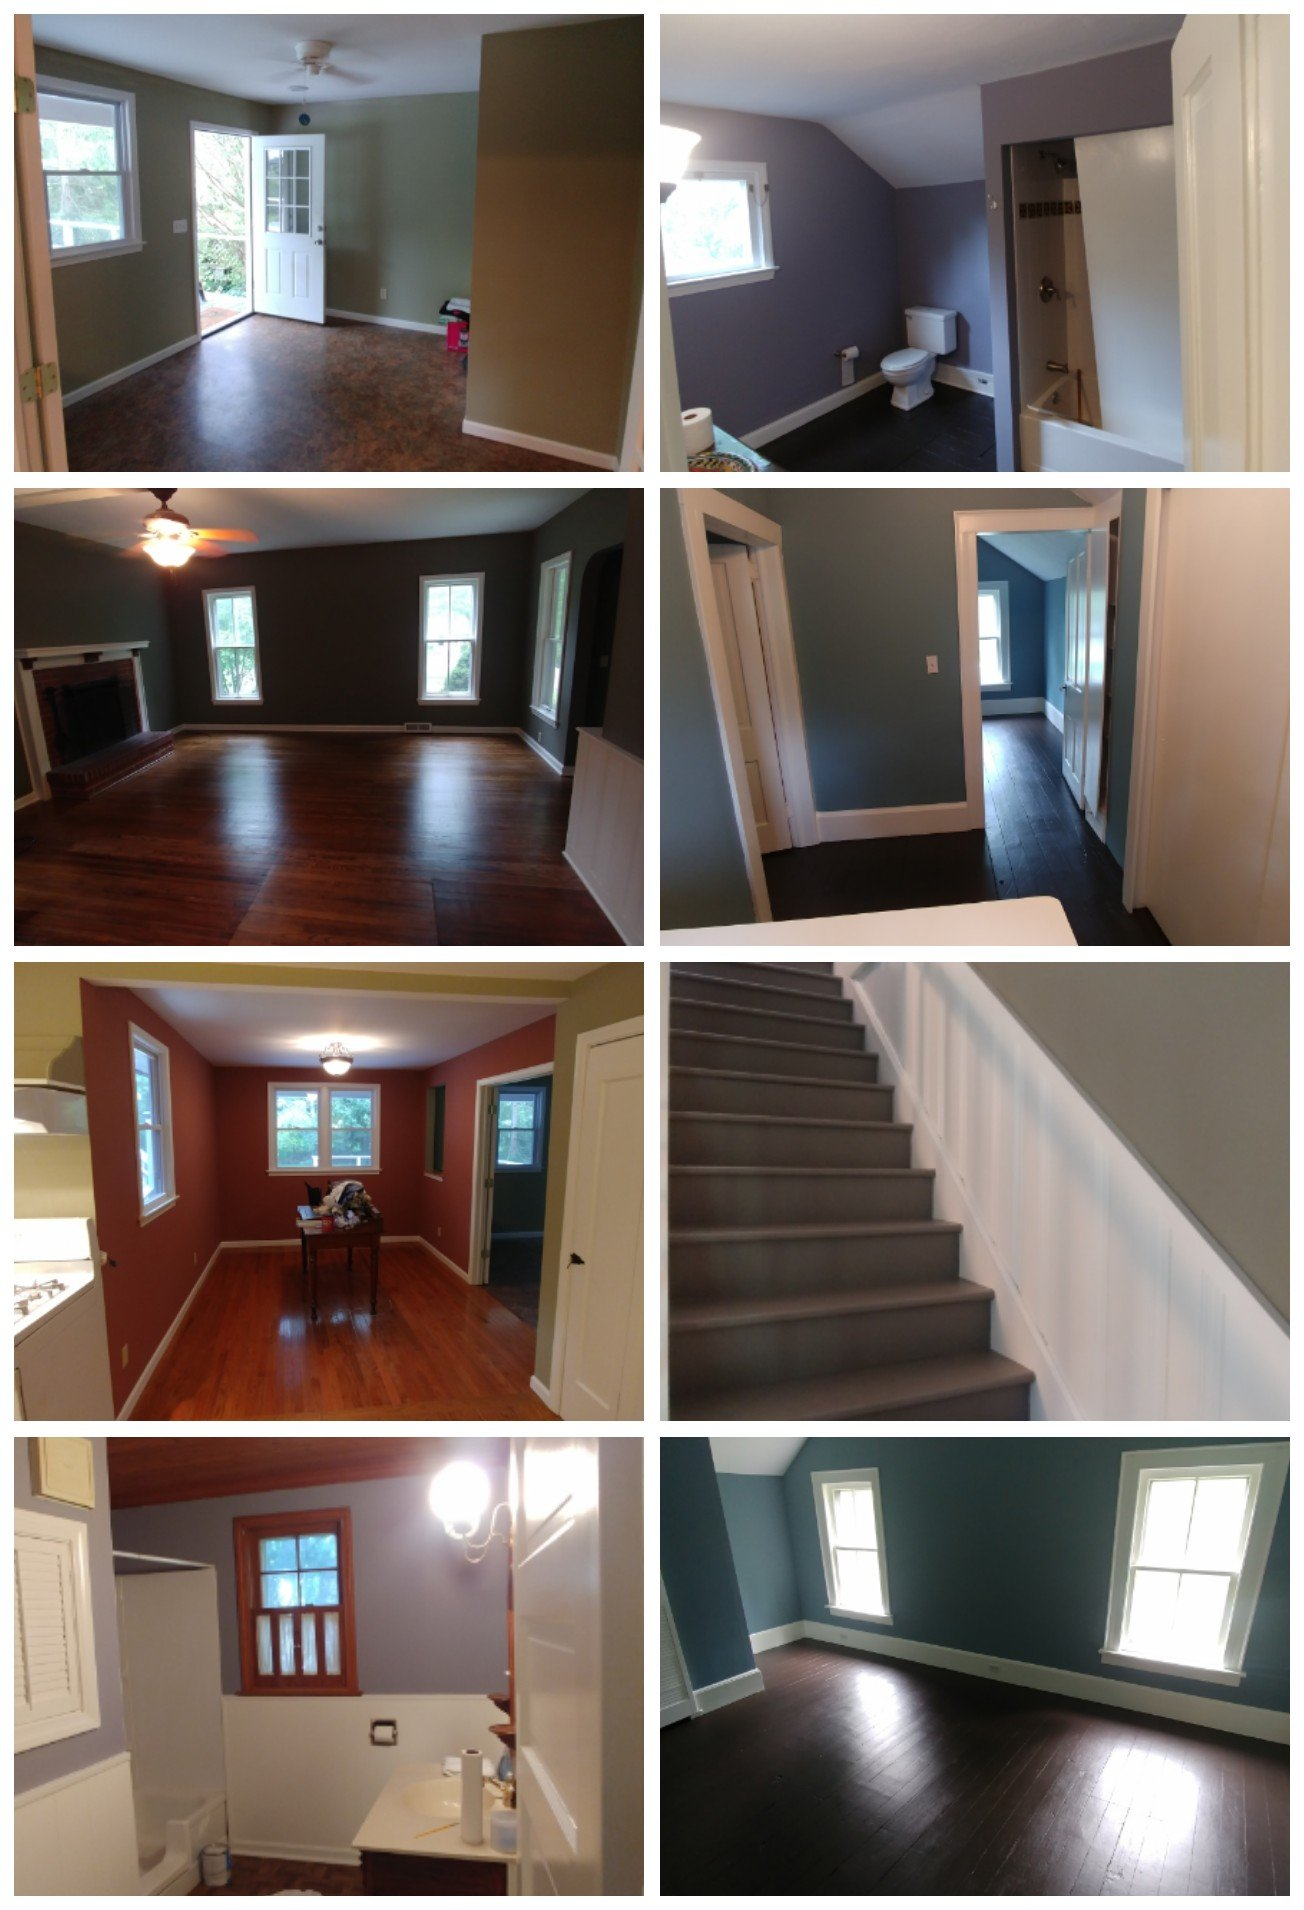 chagrin-falls-interior-painting-contractors